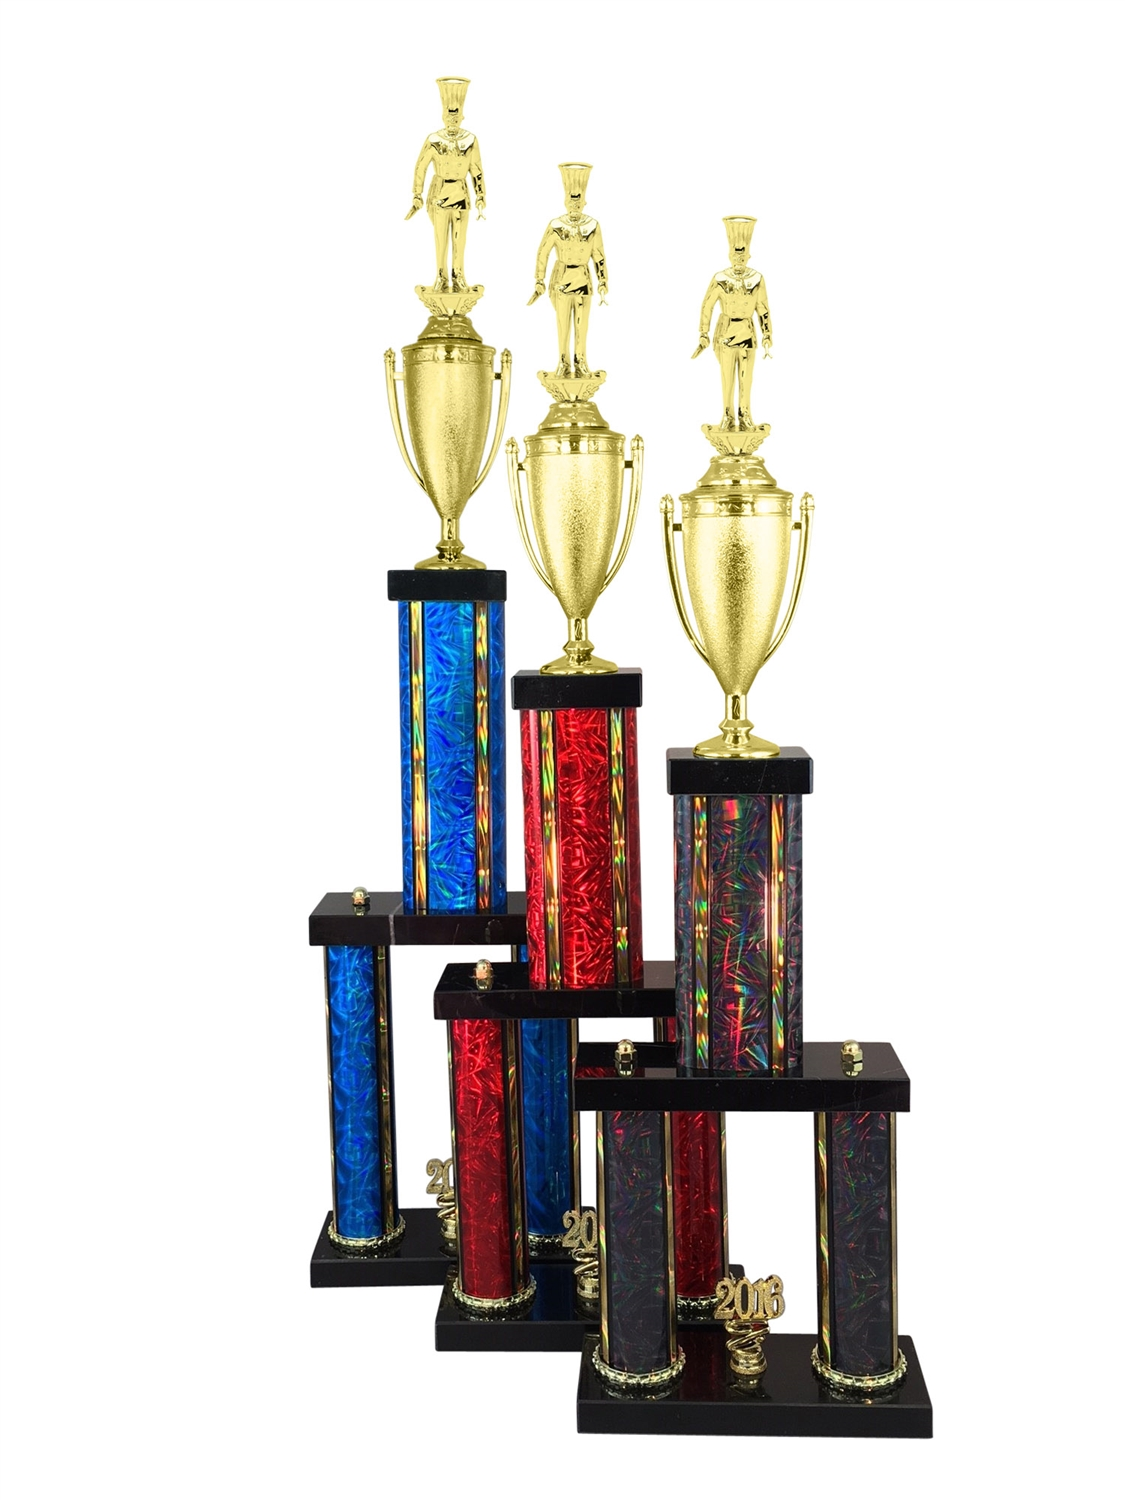 Chef Trophy Available in 11 Color & 6 Size Options